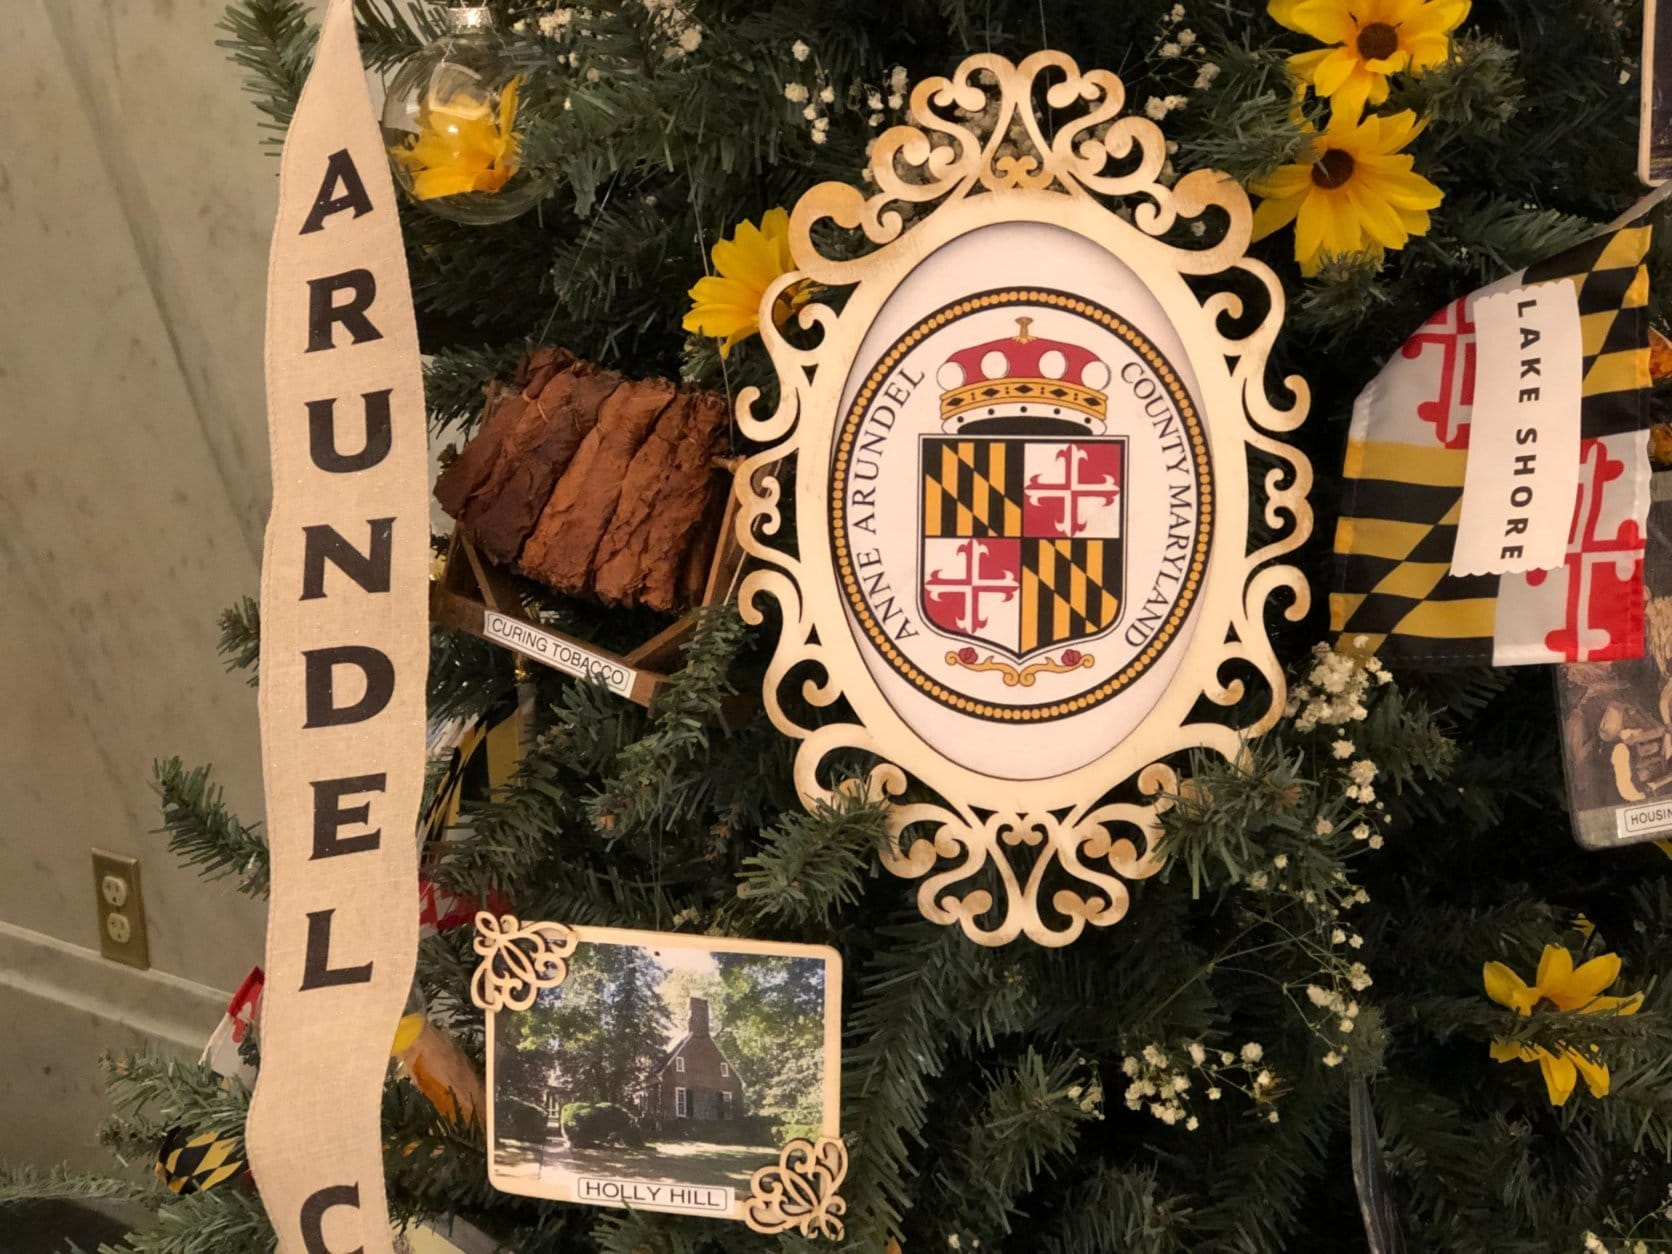 Another side of the Anne Arundel County-themed holiday tree on view at Maryland's State House in Annapolis, Md. (WTOP/Kate Ryan)